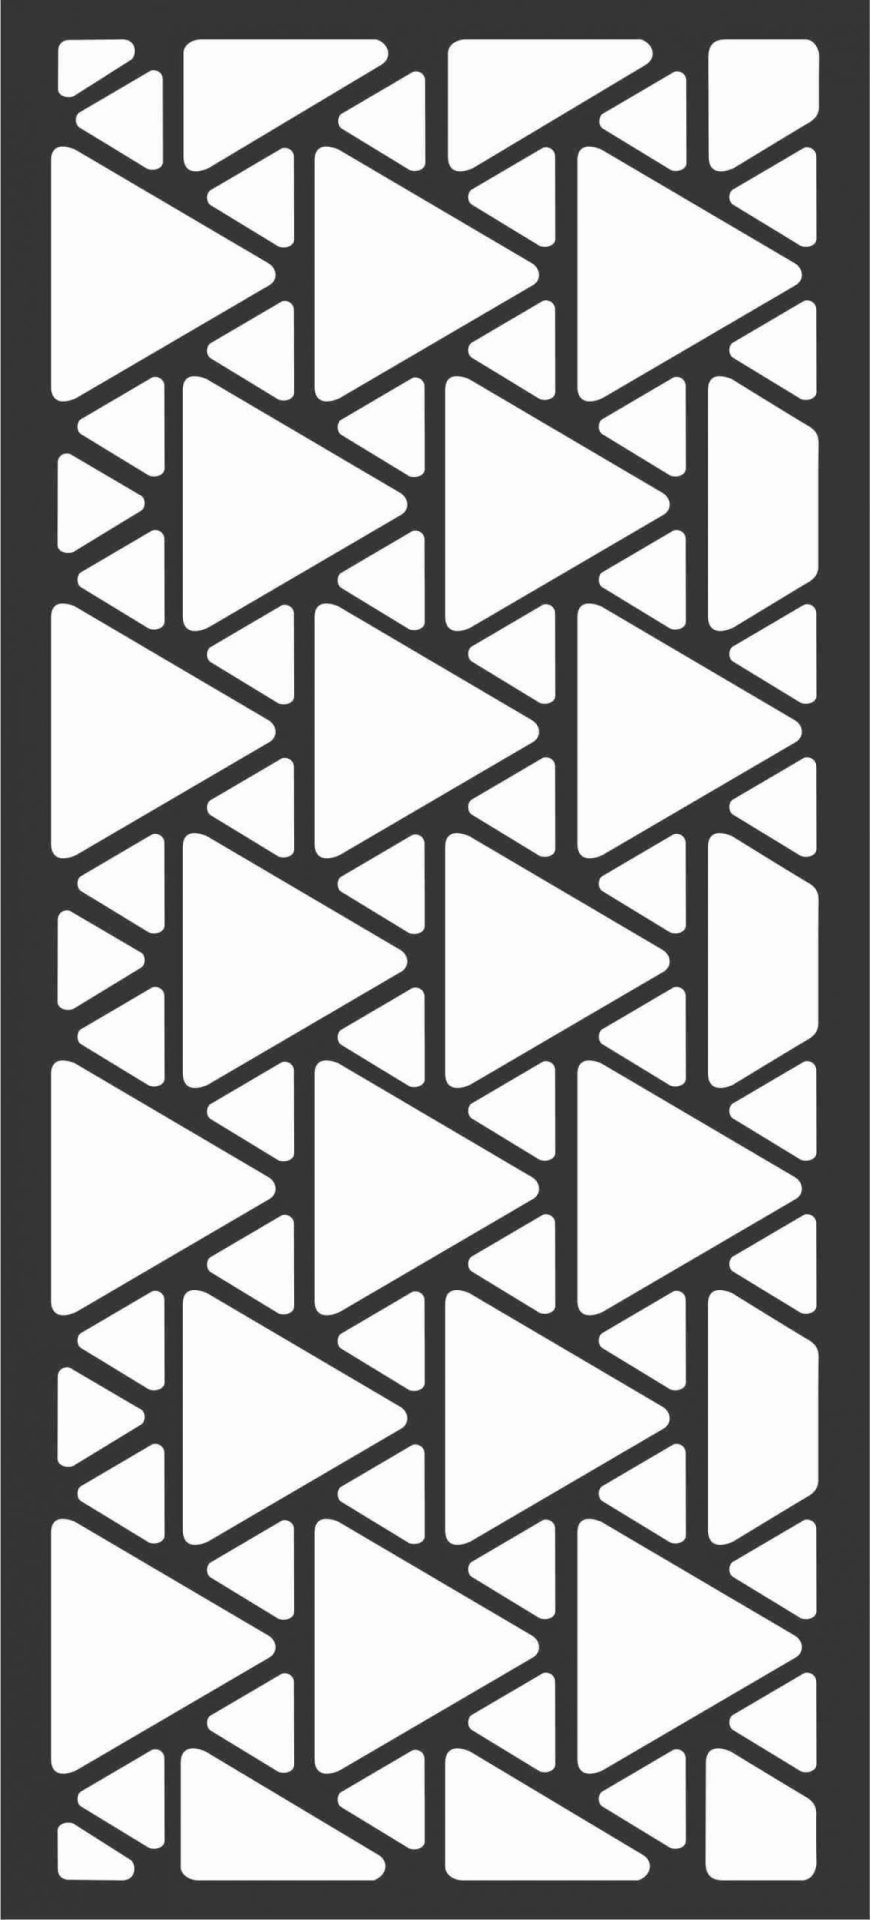 Floral Screen Patterns Design 6 Free DXF File